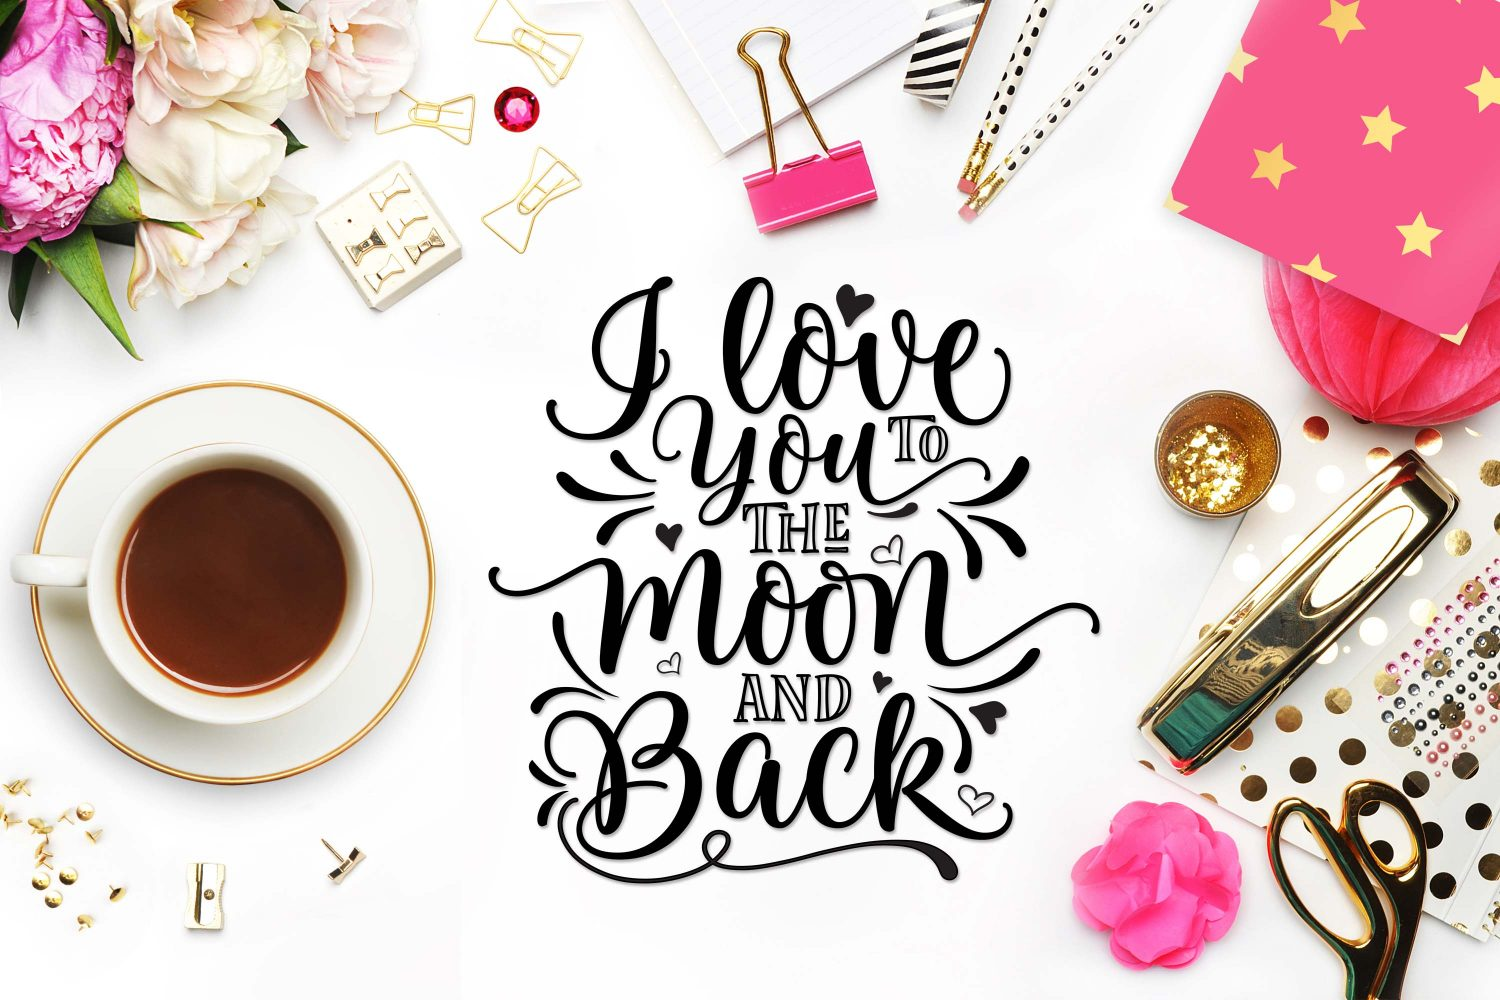 I Love You To The Moon And Back Svg Dxf Png Eps Theblackcatprints